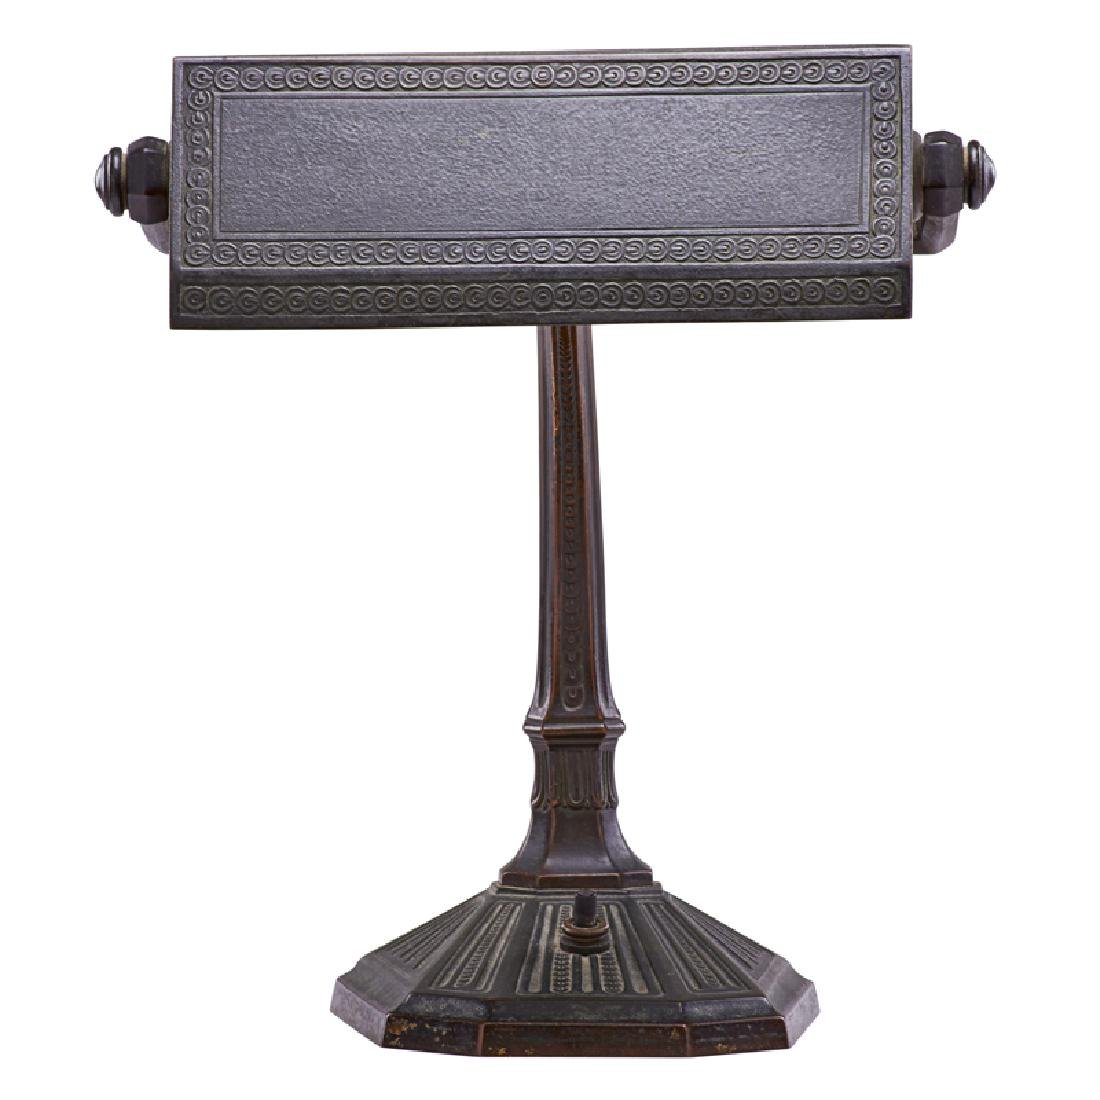 TIFFANY STUDIOS Desk lamp - 3